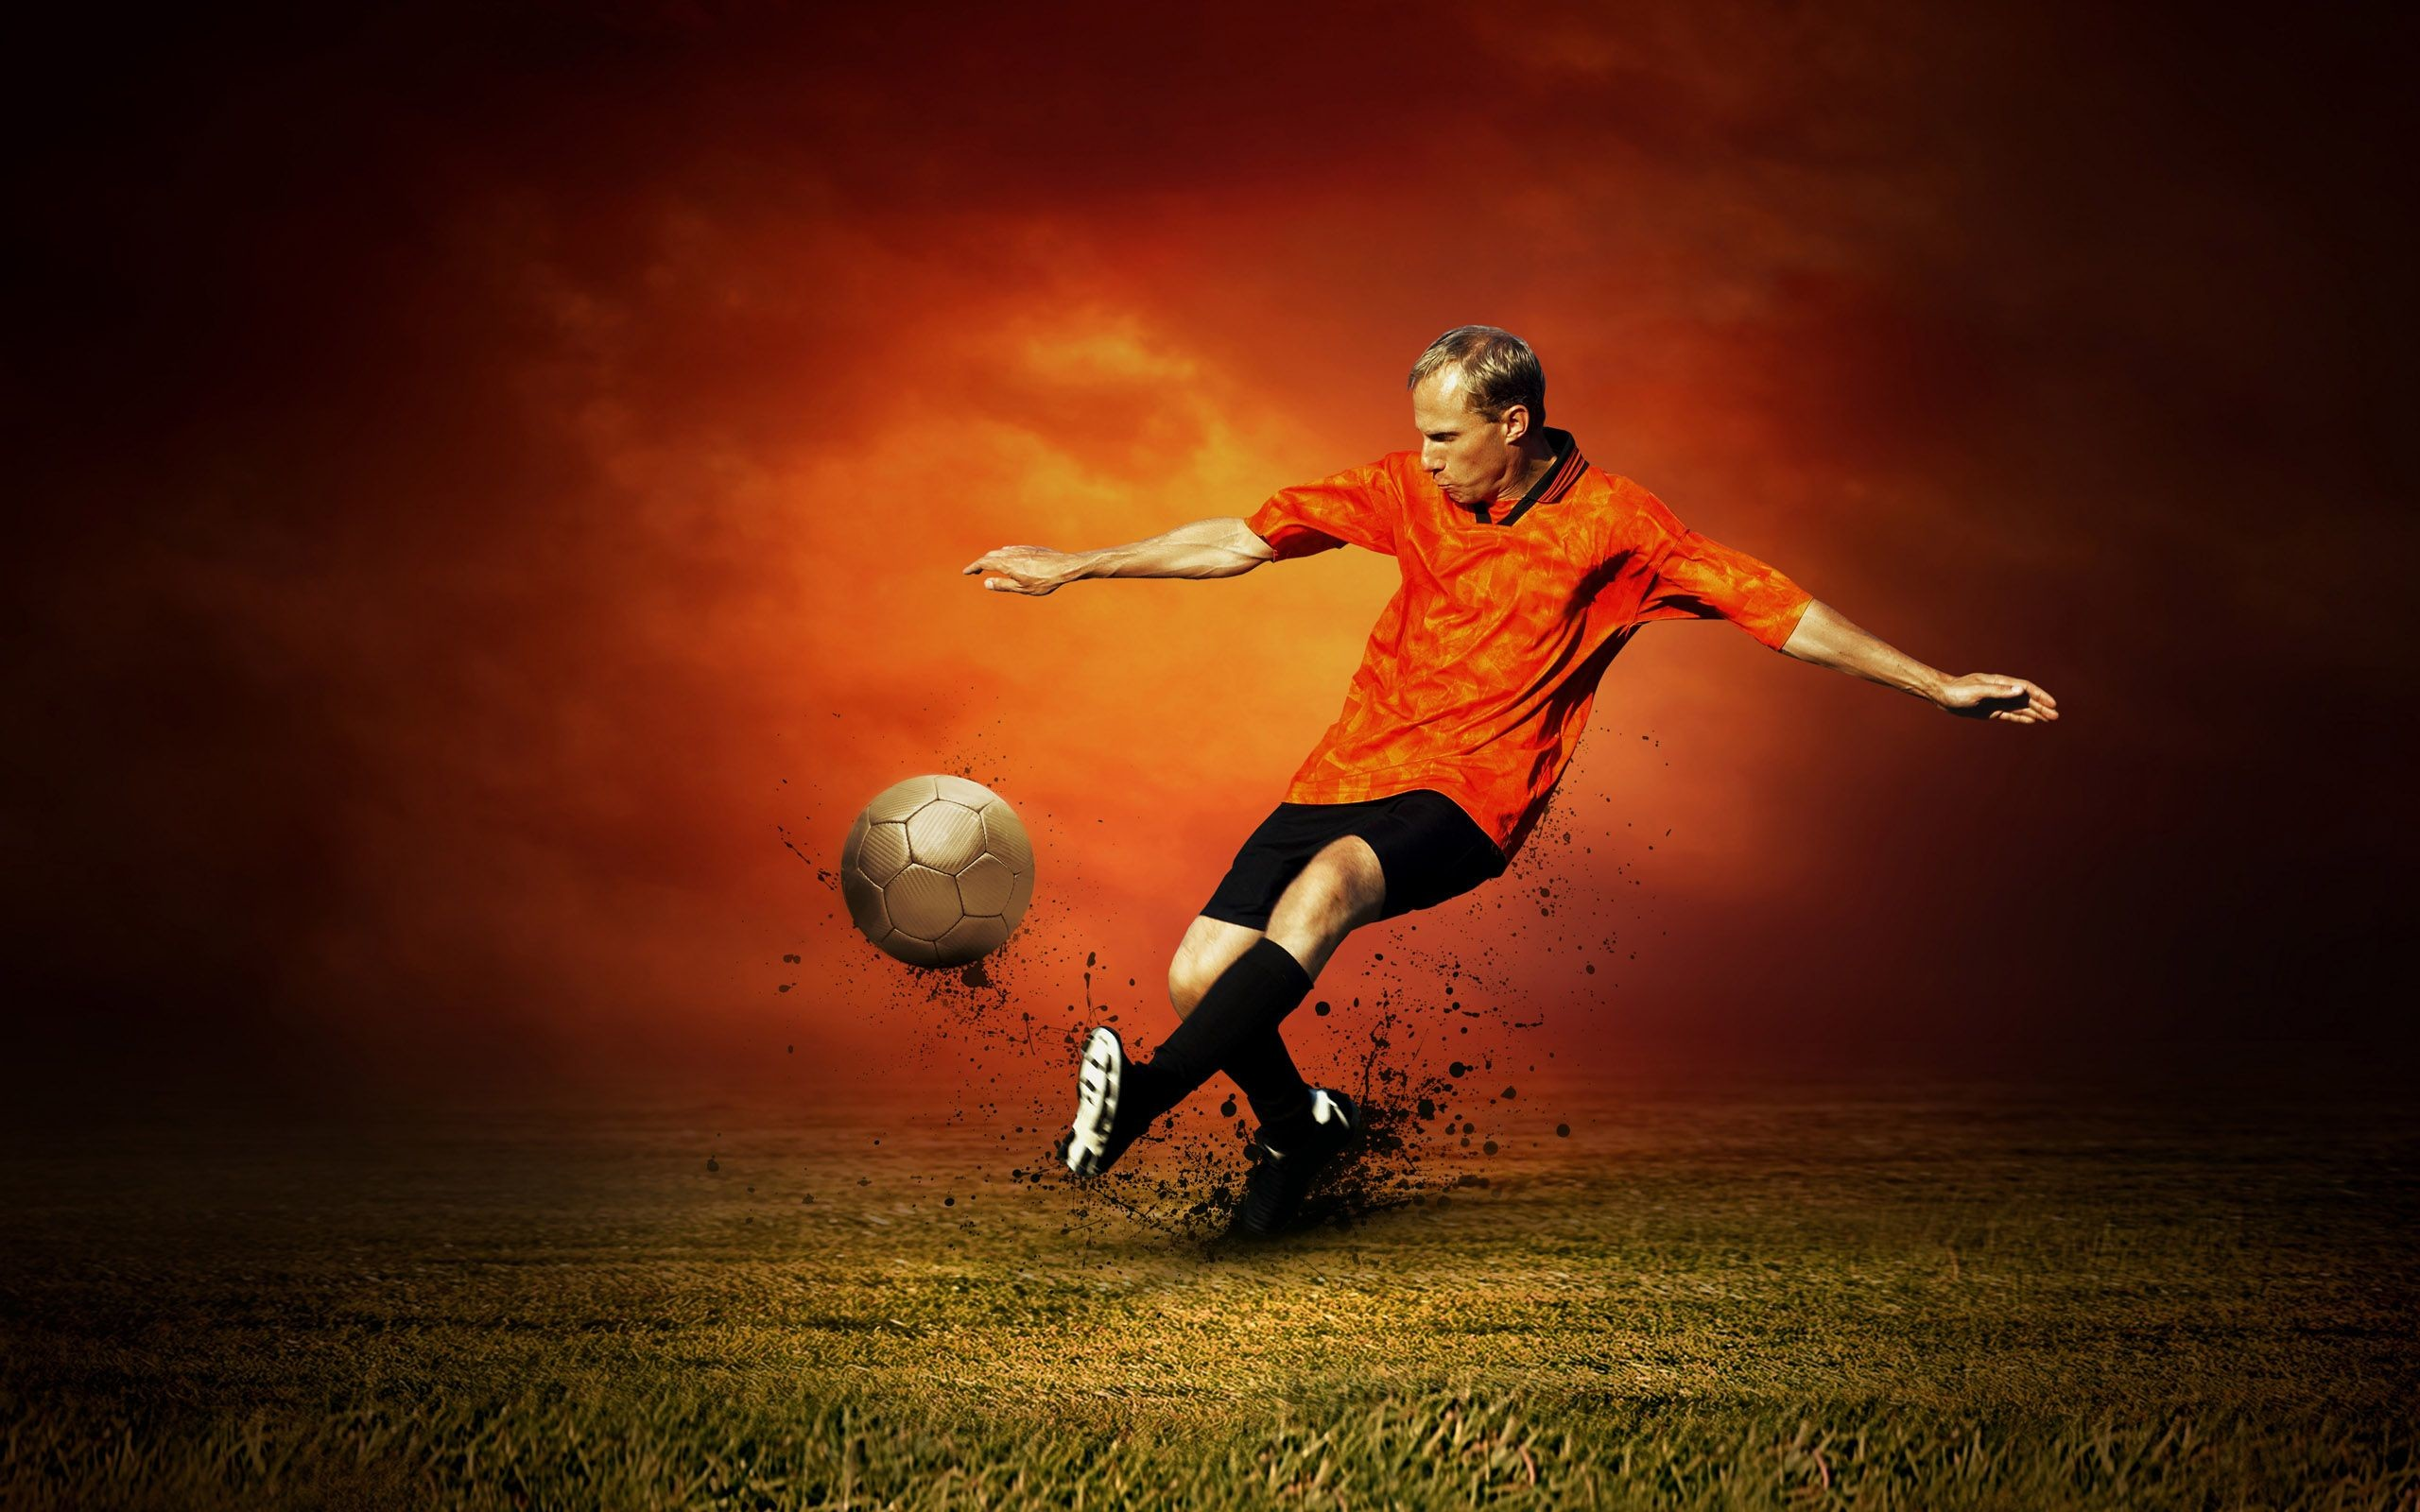 HD Cool Soccer Backgrounds.